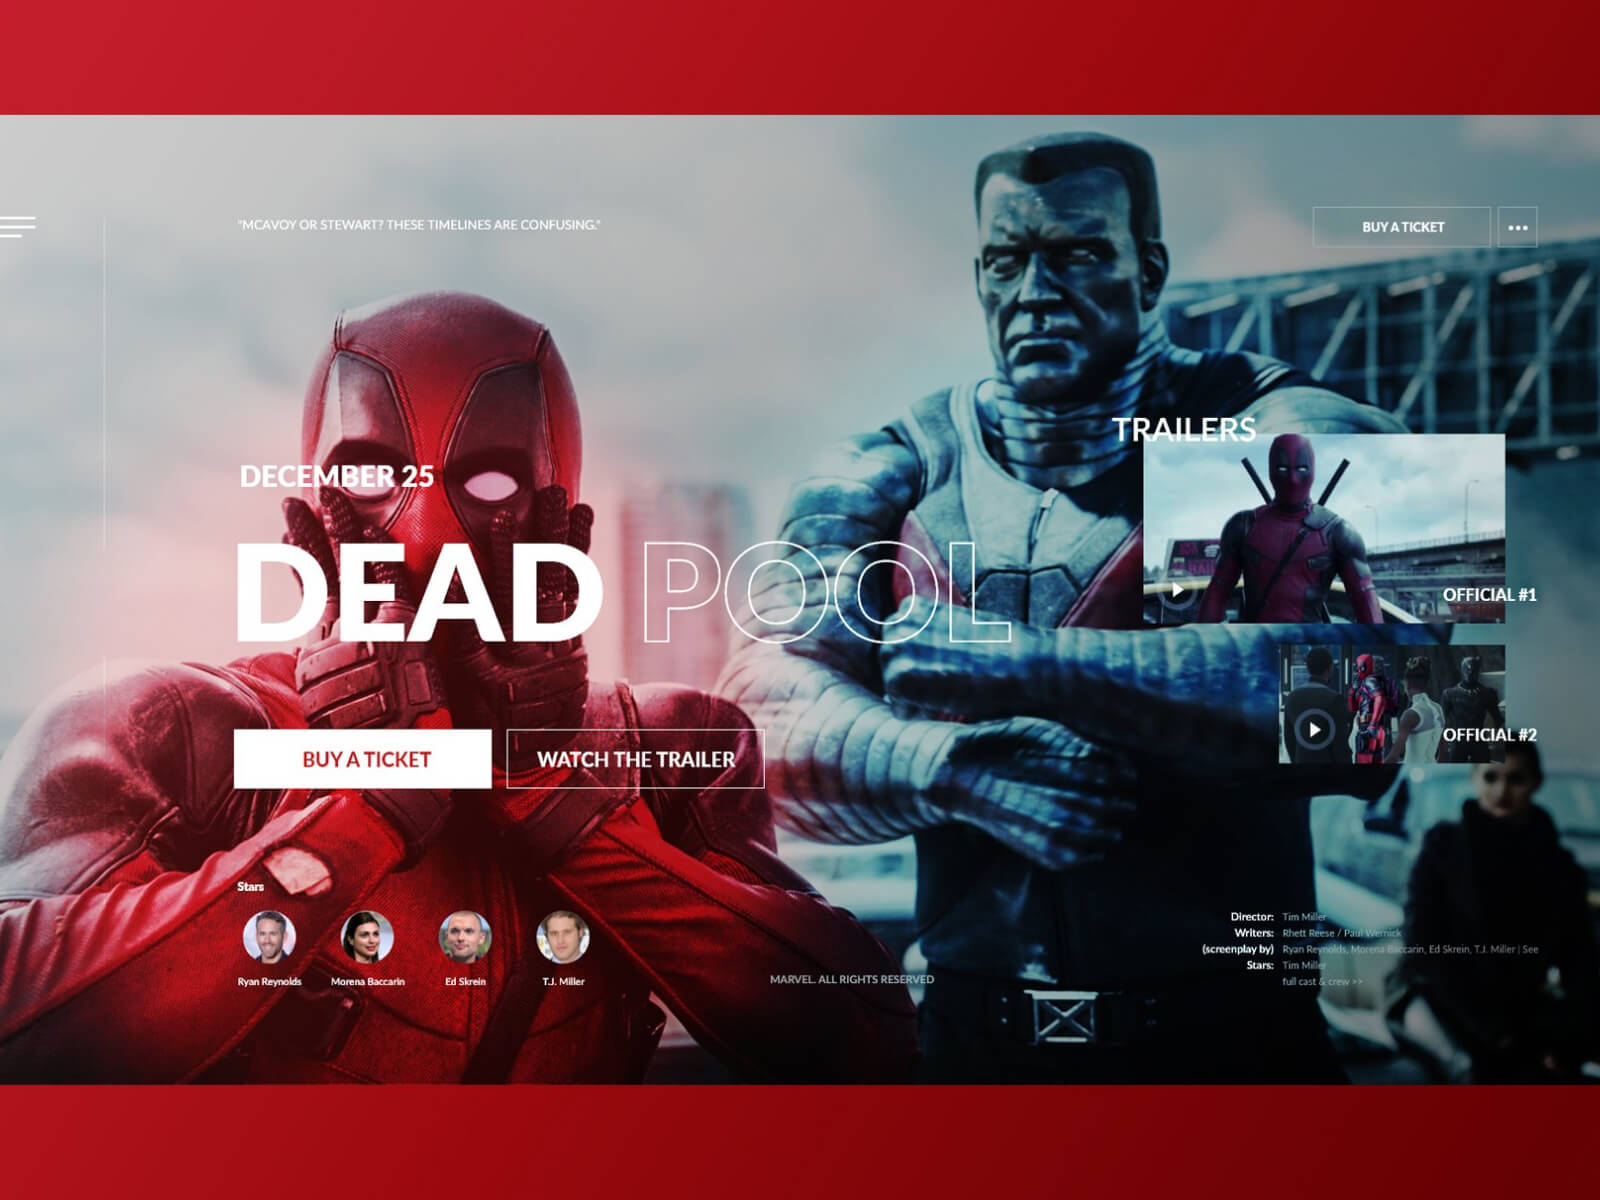 Deadpool Webpage cover image